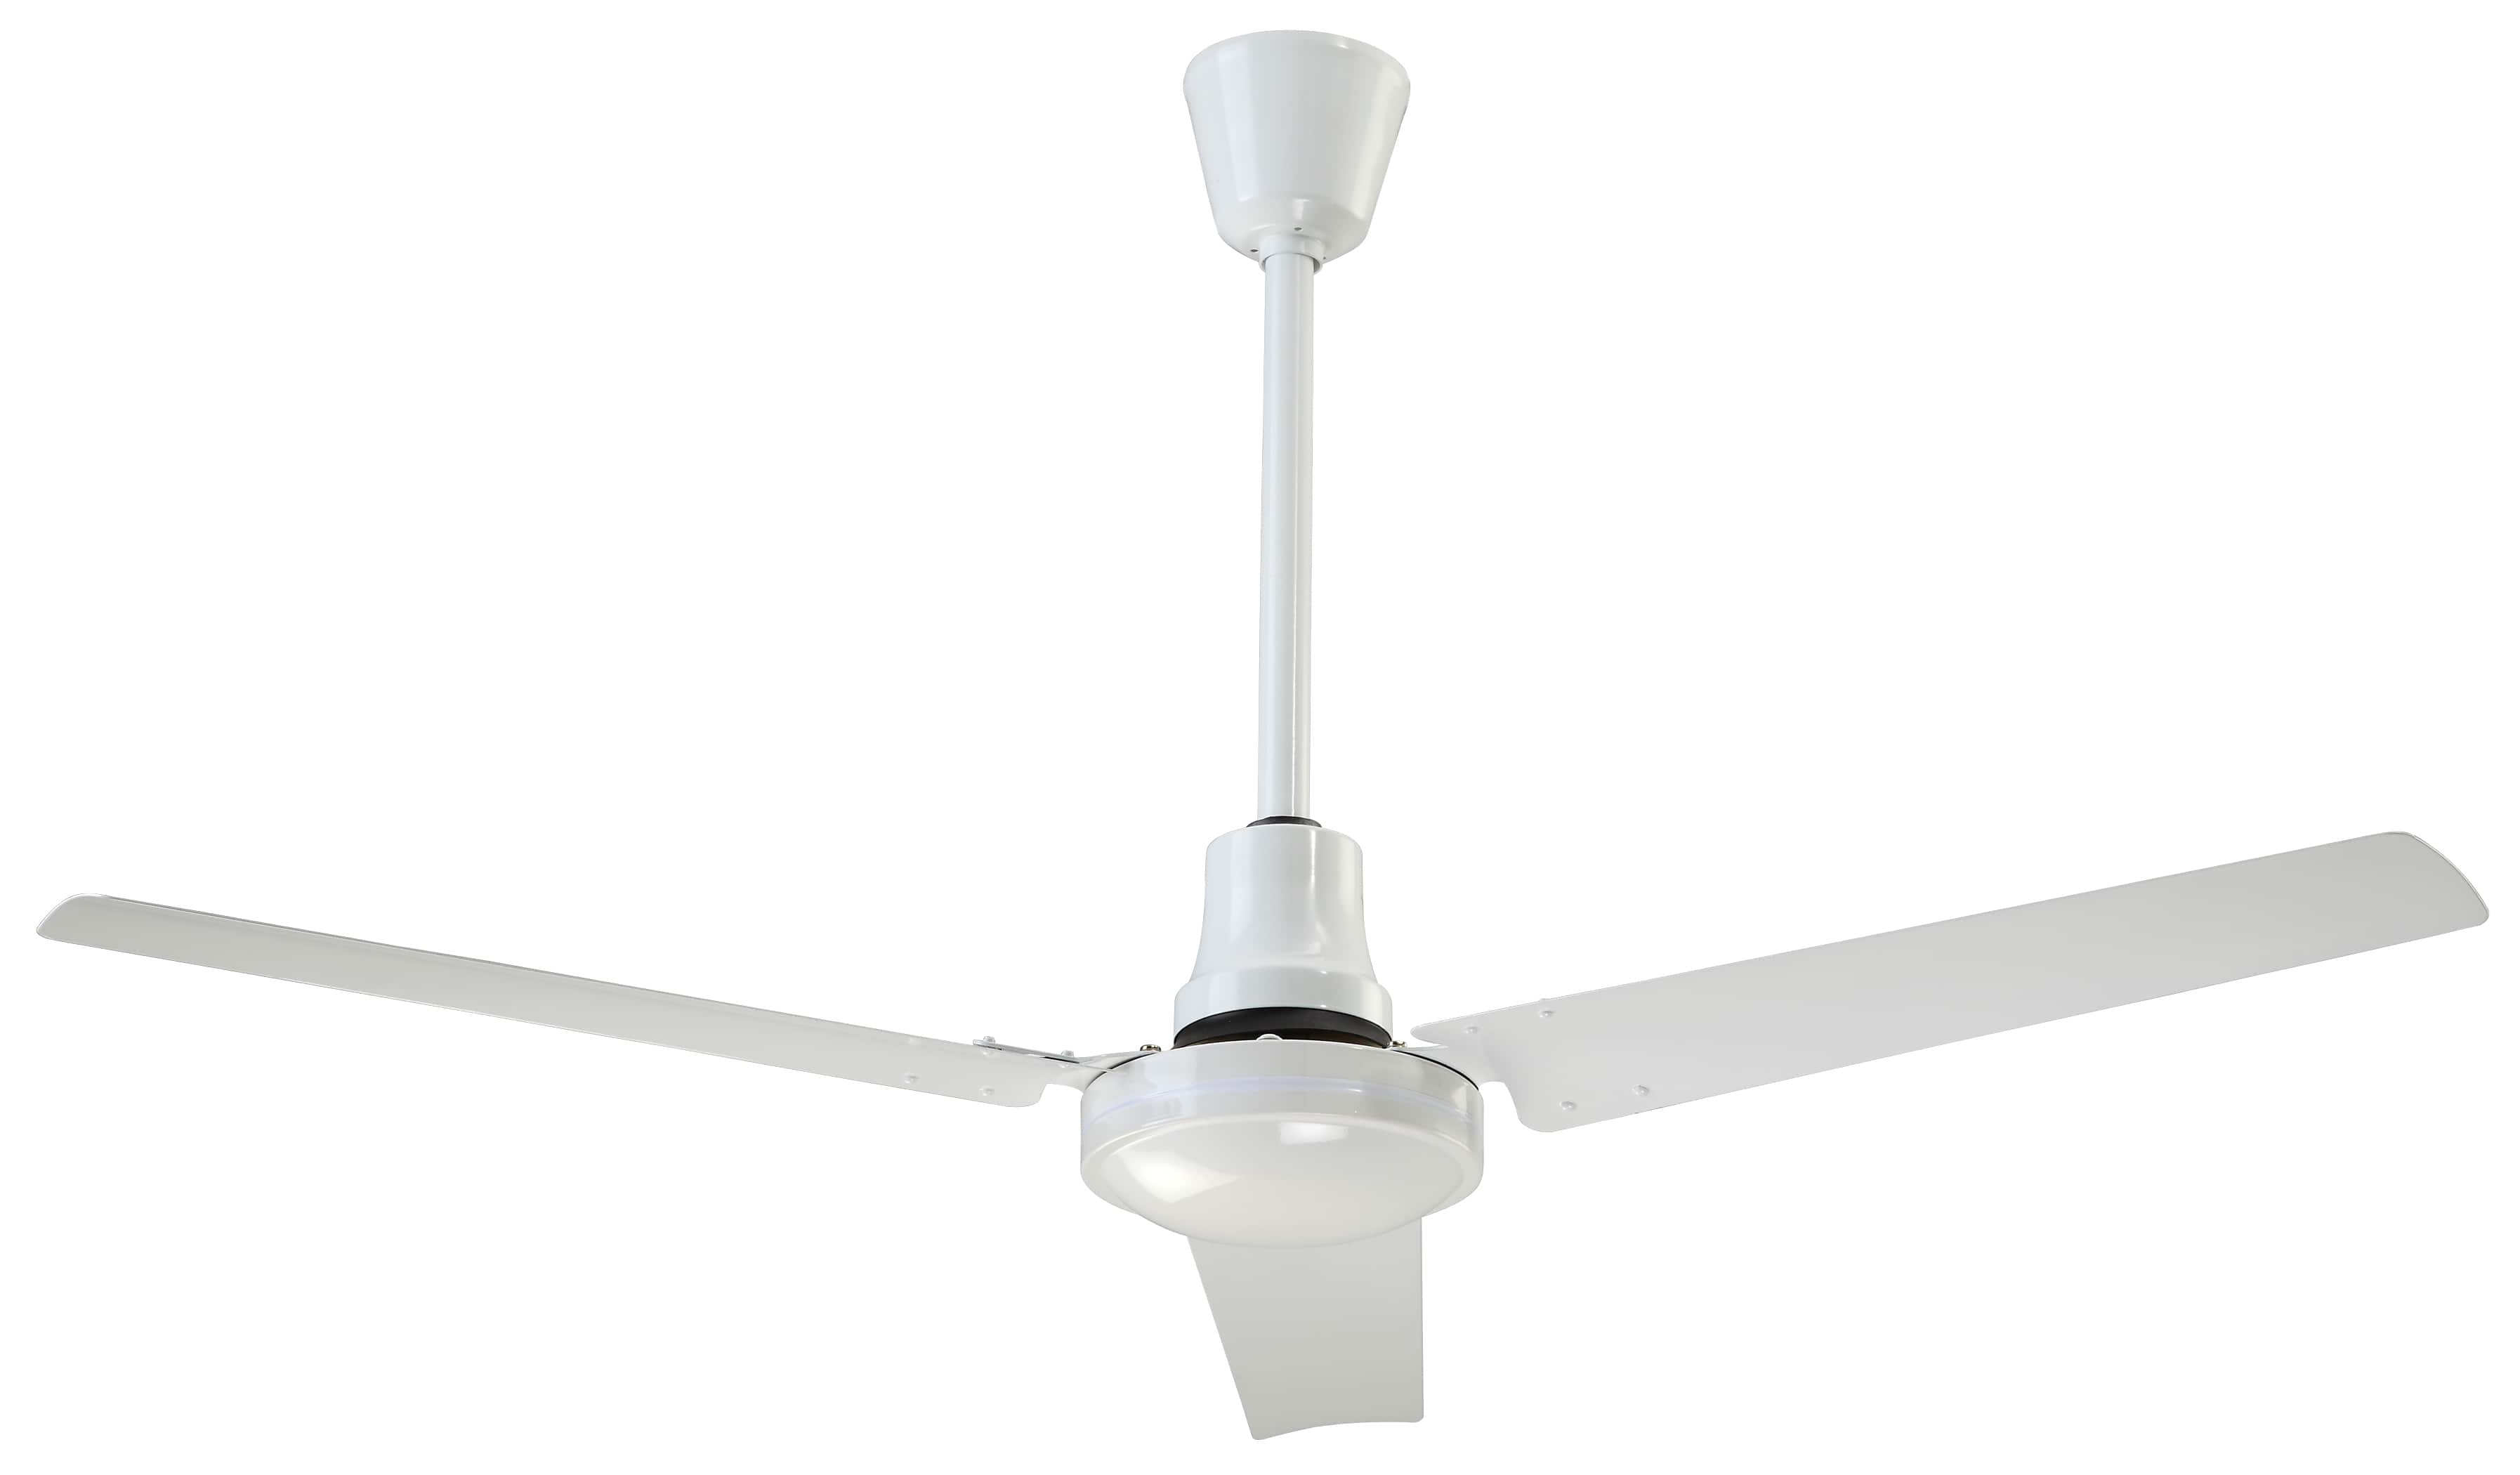 air-circulator-fans-ceiling-fans.jpg